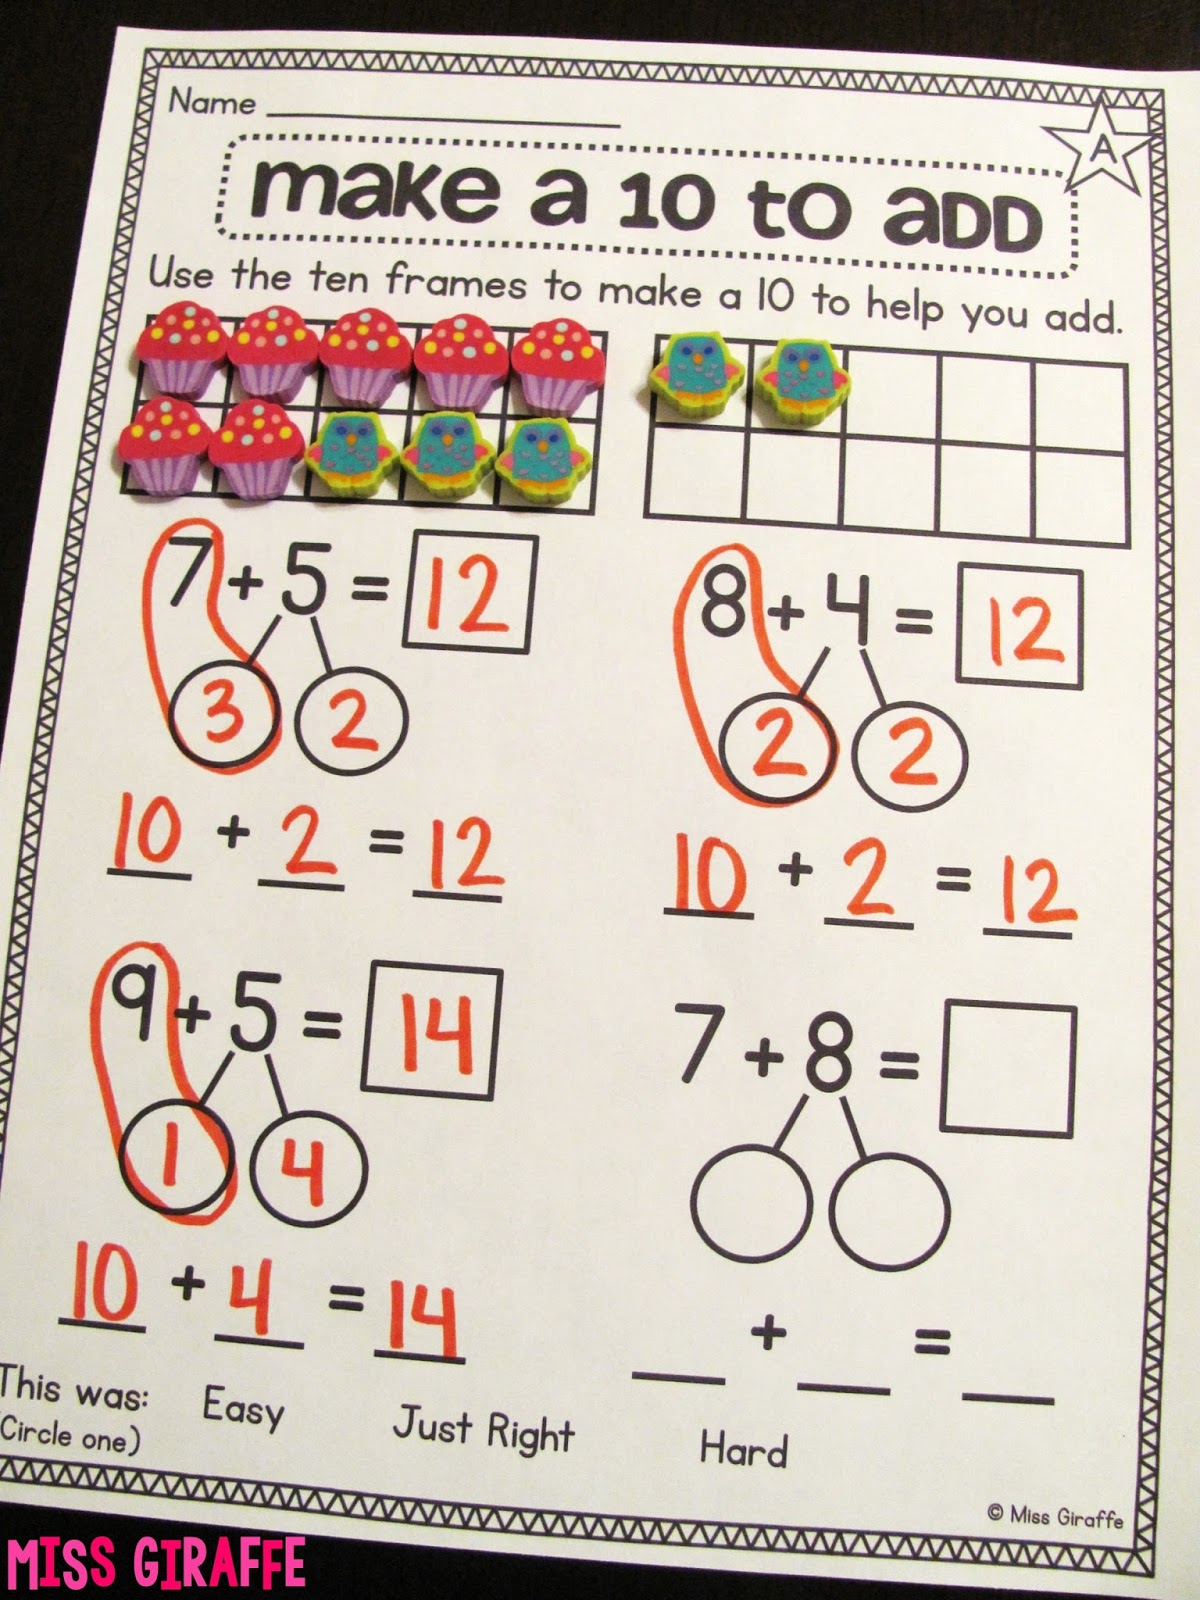 Addition Worksheets likewise Miss Giraffe Worksheets   Free Printables Worksheet furthermore Miss Giraffe's Cl  Making a 10 to Add likewise Grade 1 Addition Worksheets   free   printable   K5 Learning furthermore  as well Make Ten Adding with Number Bonds for Singapore Math  Math in Focus besides Making Ten To Subtract Worksheet Teaching Resources   Teachers Pay likewise First Grade Summer Math Review CC and TEKS Aligned in addition Time And Date Worksheet Preview Adding 10 Worksheets Addition Within additionally First Grade Math Unit 3 Addition to 10 in 2018   Kindergarten Math likewise Making 10 To Add Worksheets Math Worksheet Grade 1 0 Best Images On also Addition Worksheets   Dynamically Created Addition Worksheets as well Free Worksheets Liry   Download and Print Worksheets   Free on furthermore  further Free Kindergarten Making 10 Worksheets   Add Up to 10 With Fun together with Miss Giraffe's Cl  Making a 10 to Add. on making 10 to add worksheets